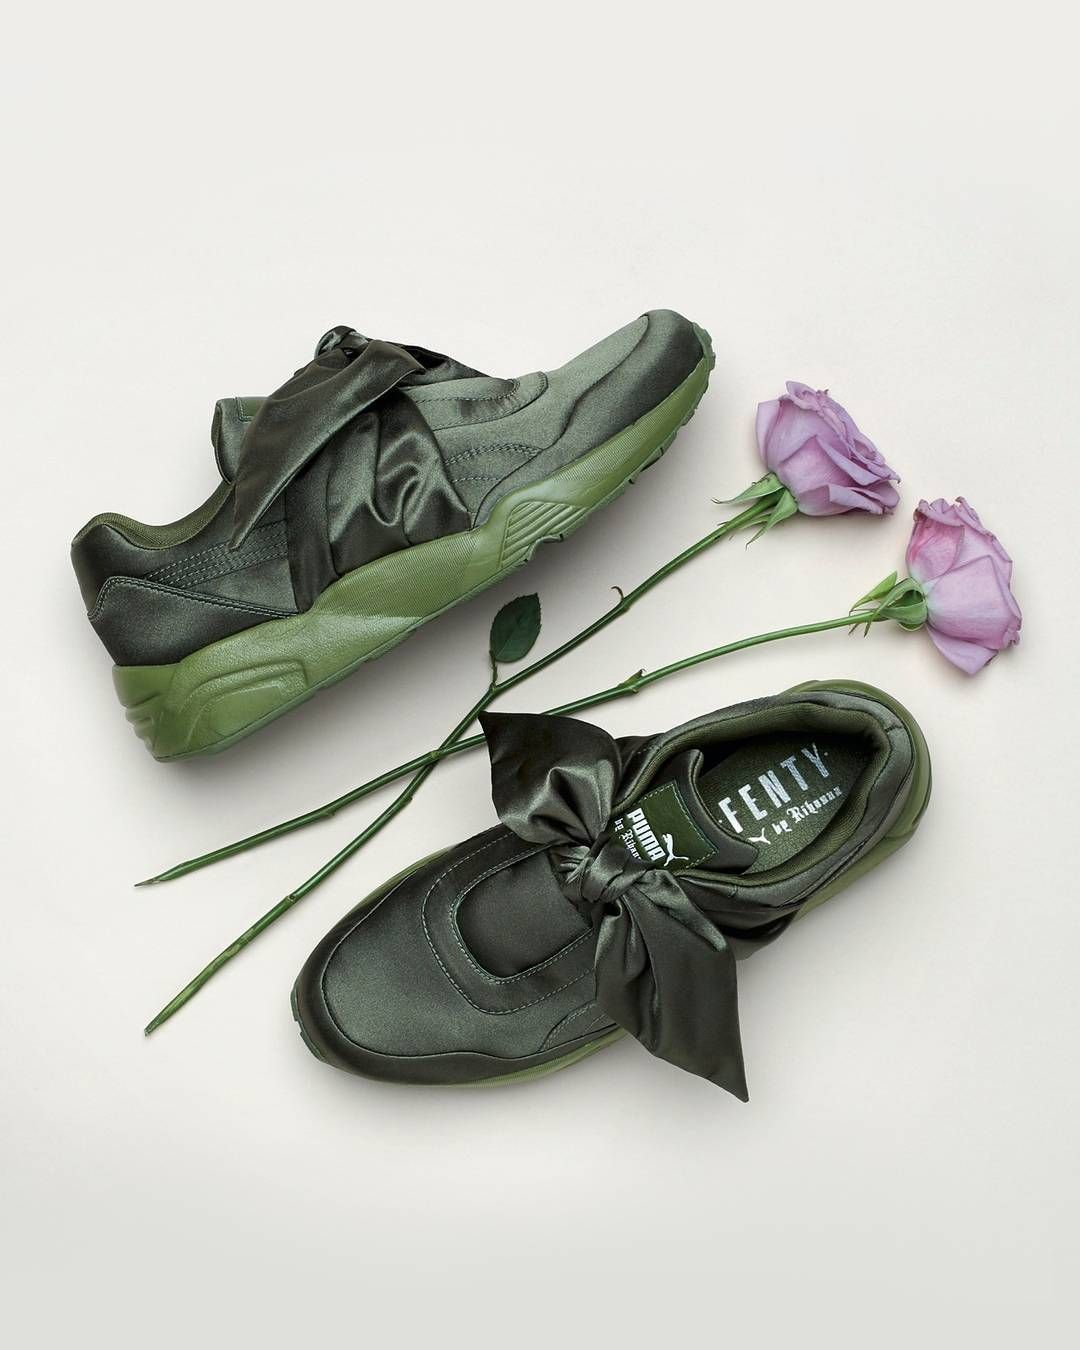 683ab22356 the Fenty x Puma Bow Collection is available now - link in bio #puma # rihanna #bdgastore